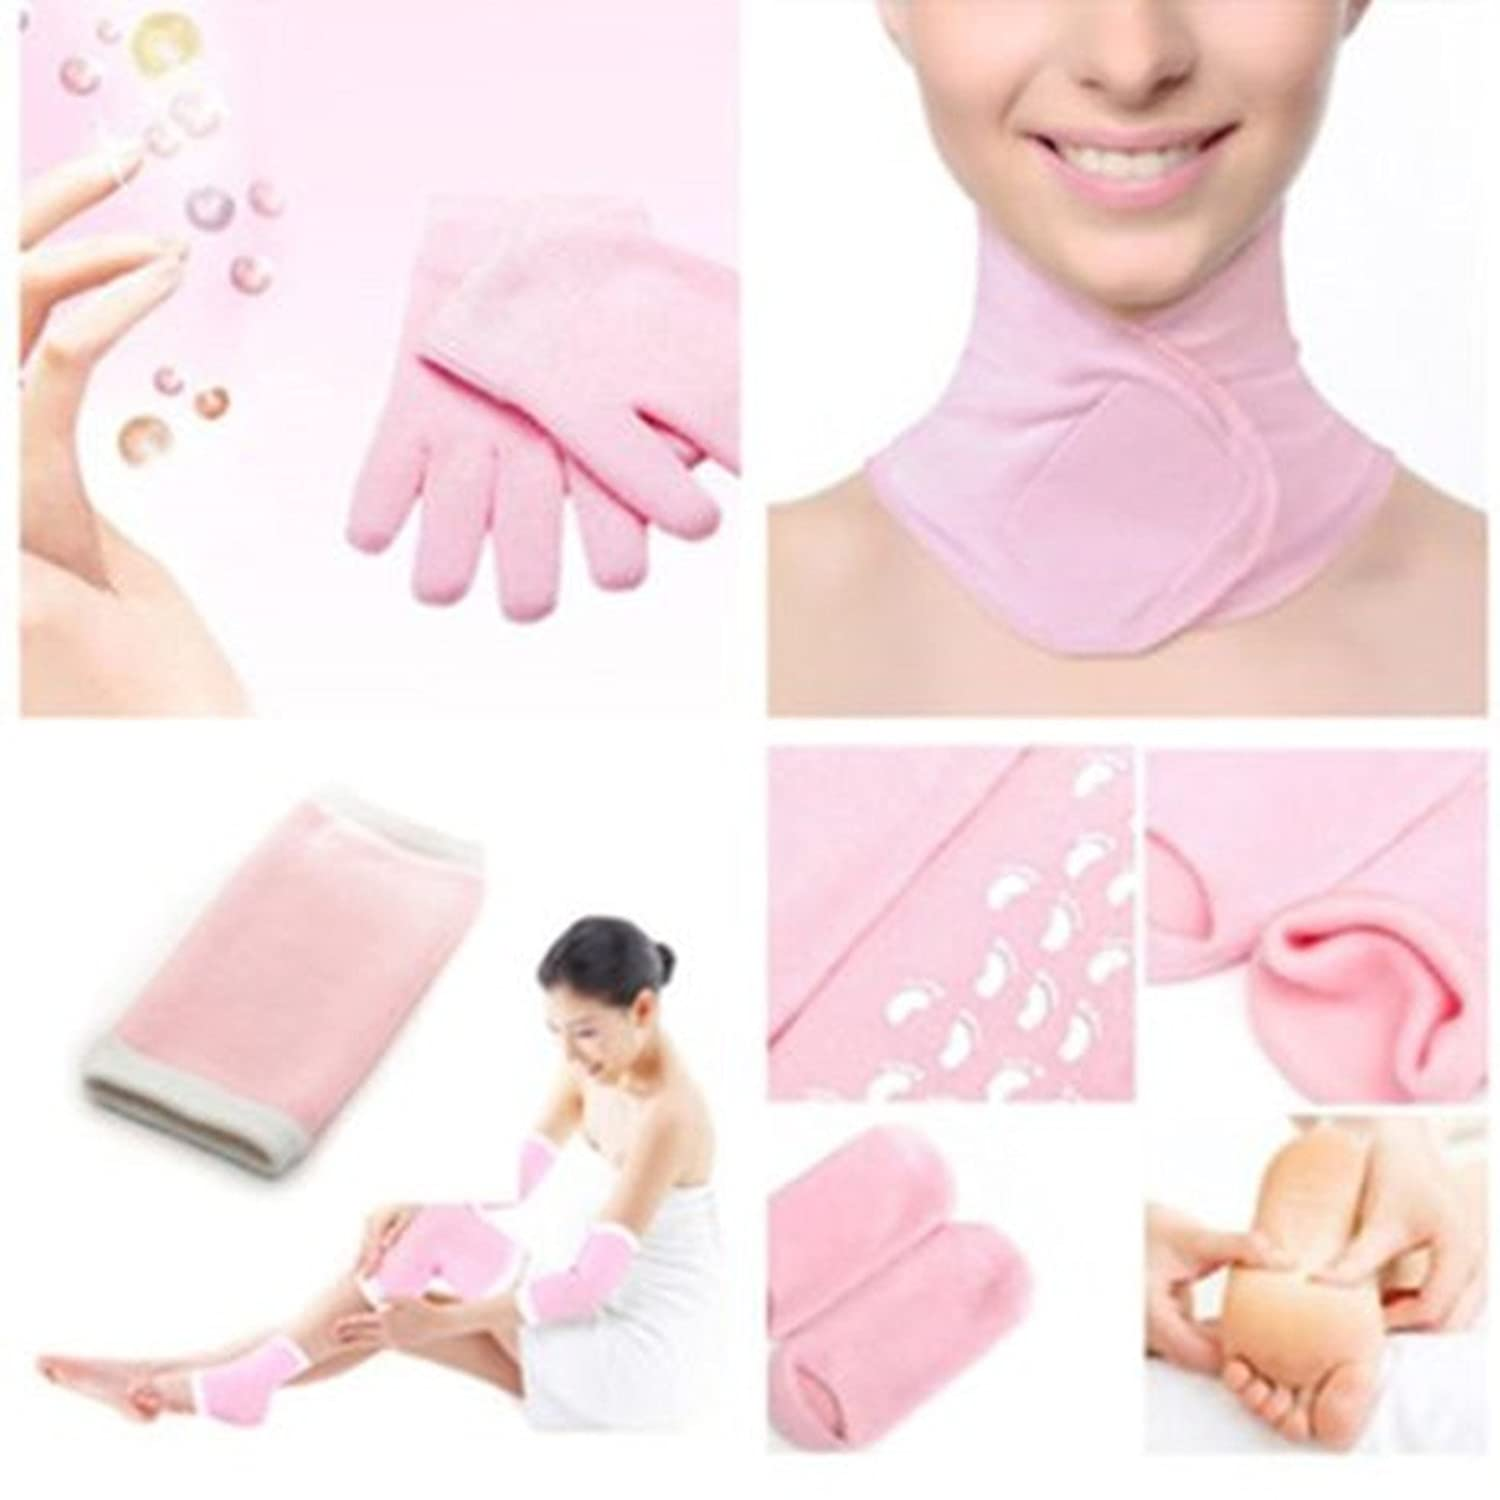 Healtheveryday® Moisturizing Beauty Spa Hydrating Self-Activating Gel Pink Color Women Dry Skin Care Gel Therapy Treatment Soften Whitening Gel Wrap Gloves+Socks+Elbow+Neck 4 in one Set, Hard & Dry Cracked Skin Moisturising Pain Recovery Home SPA